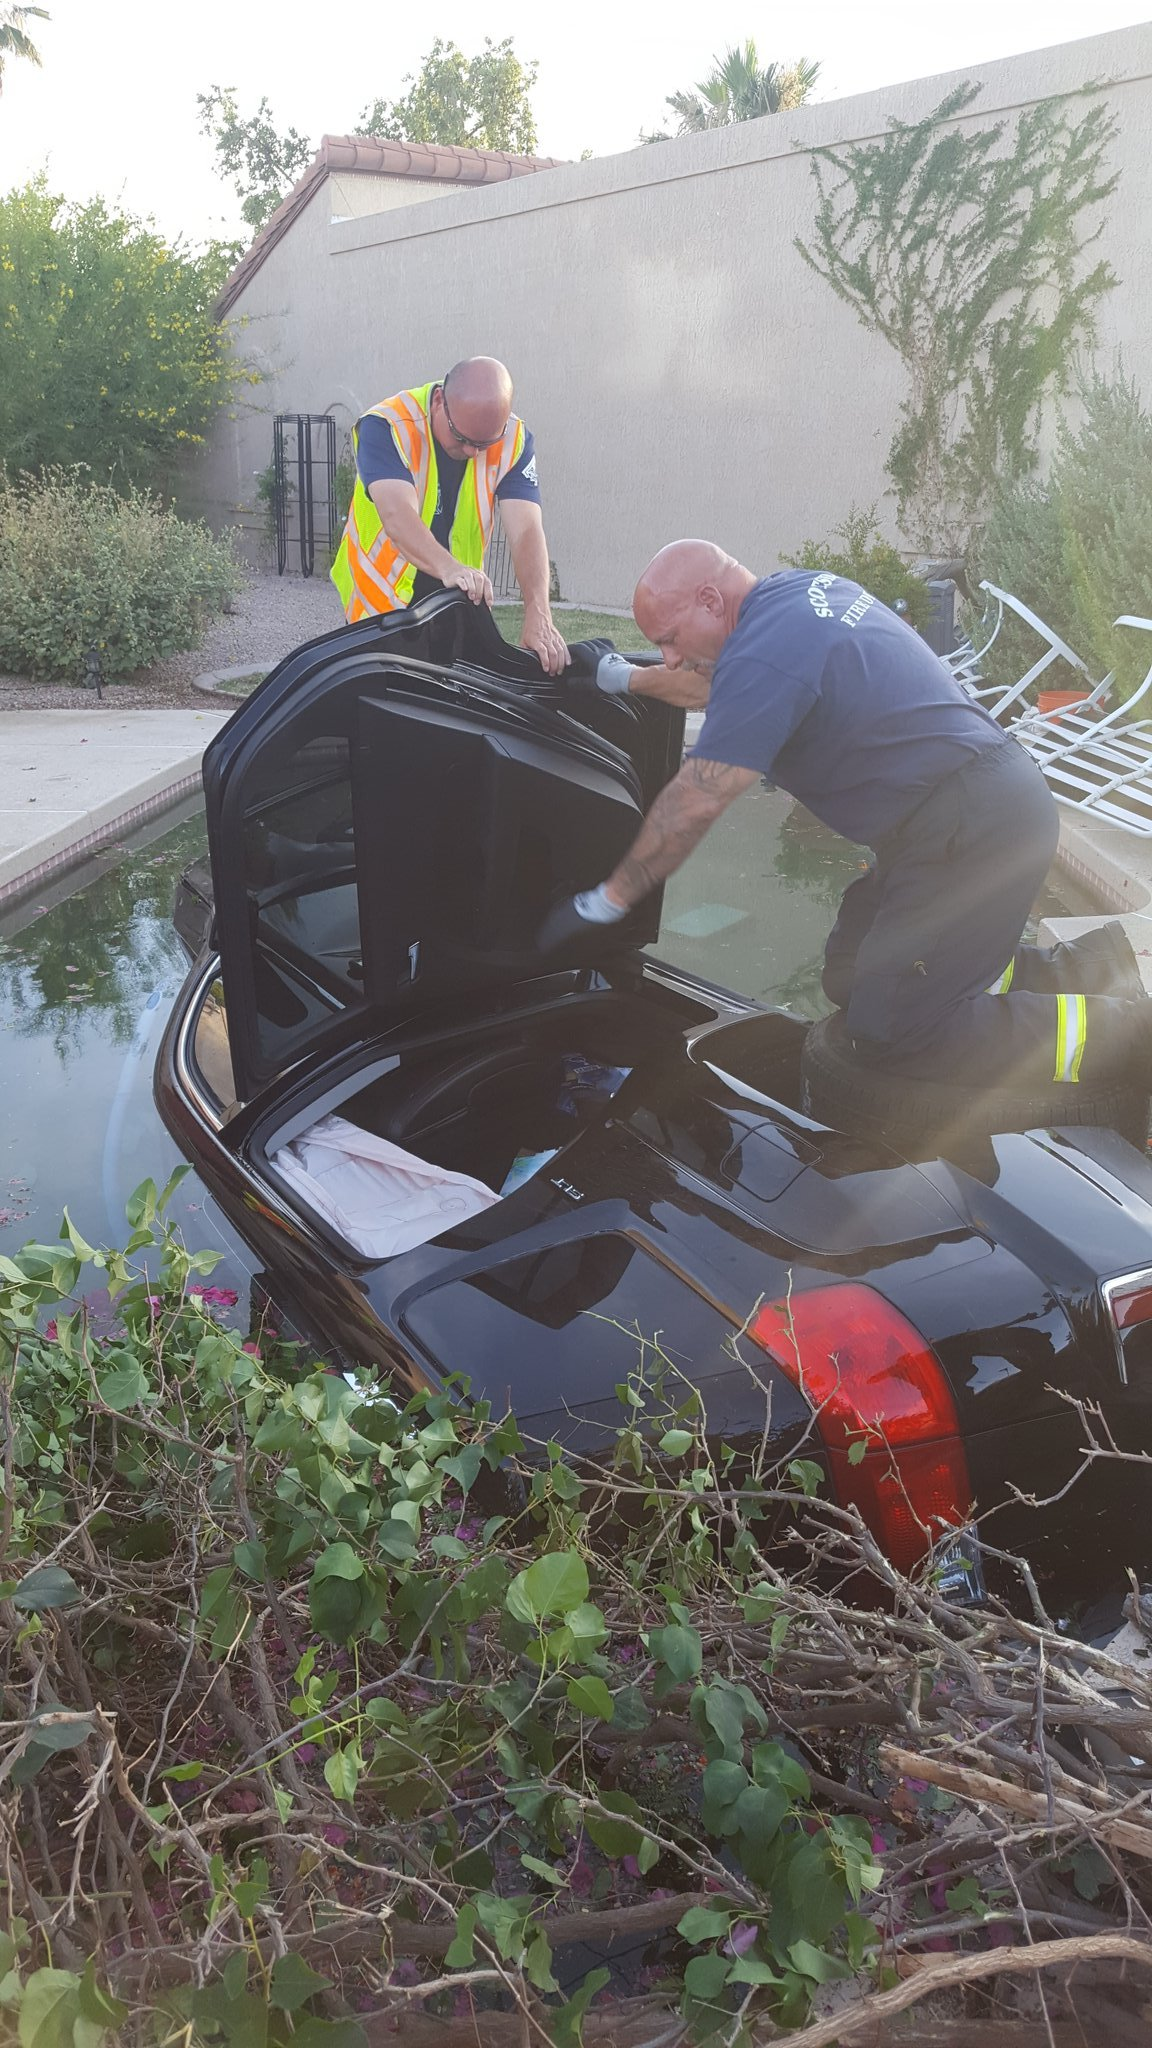 Crews rescued the man from the SUV before it went underwater on its side. (Source: Scottsdale Fire Department)